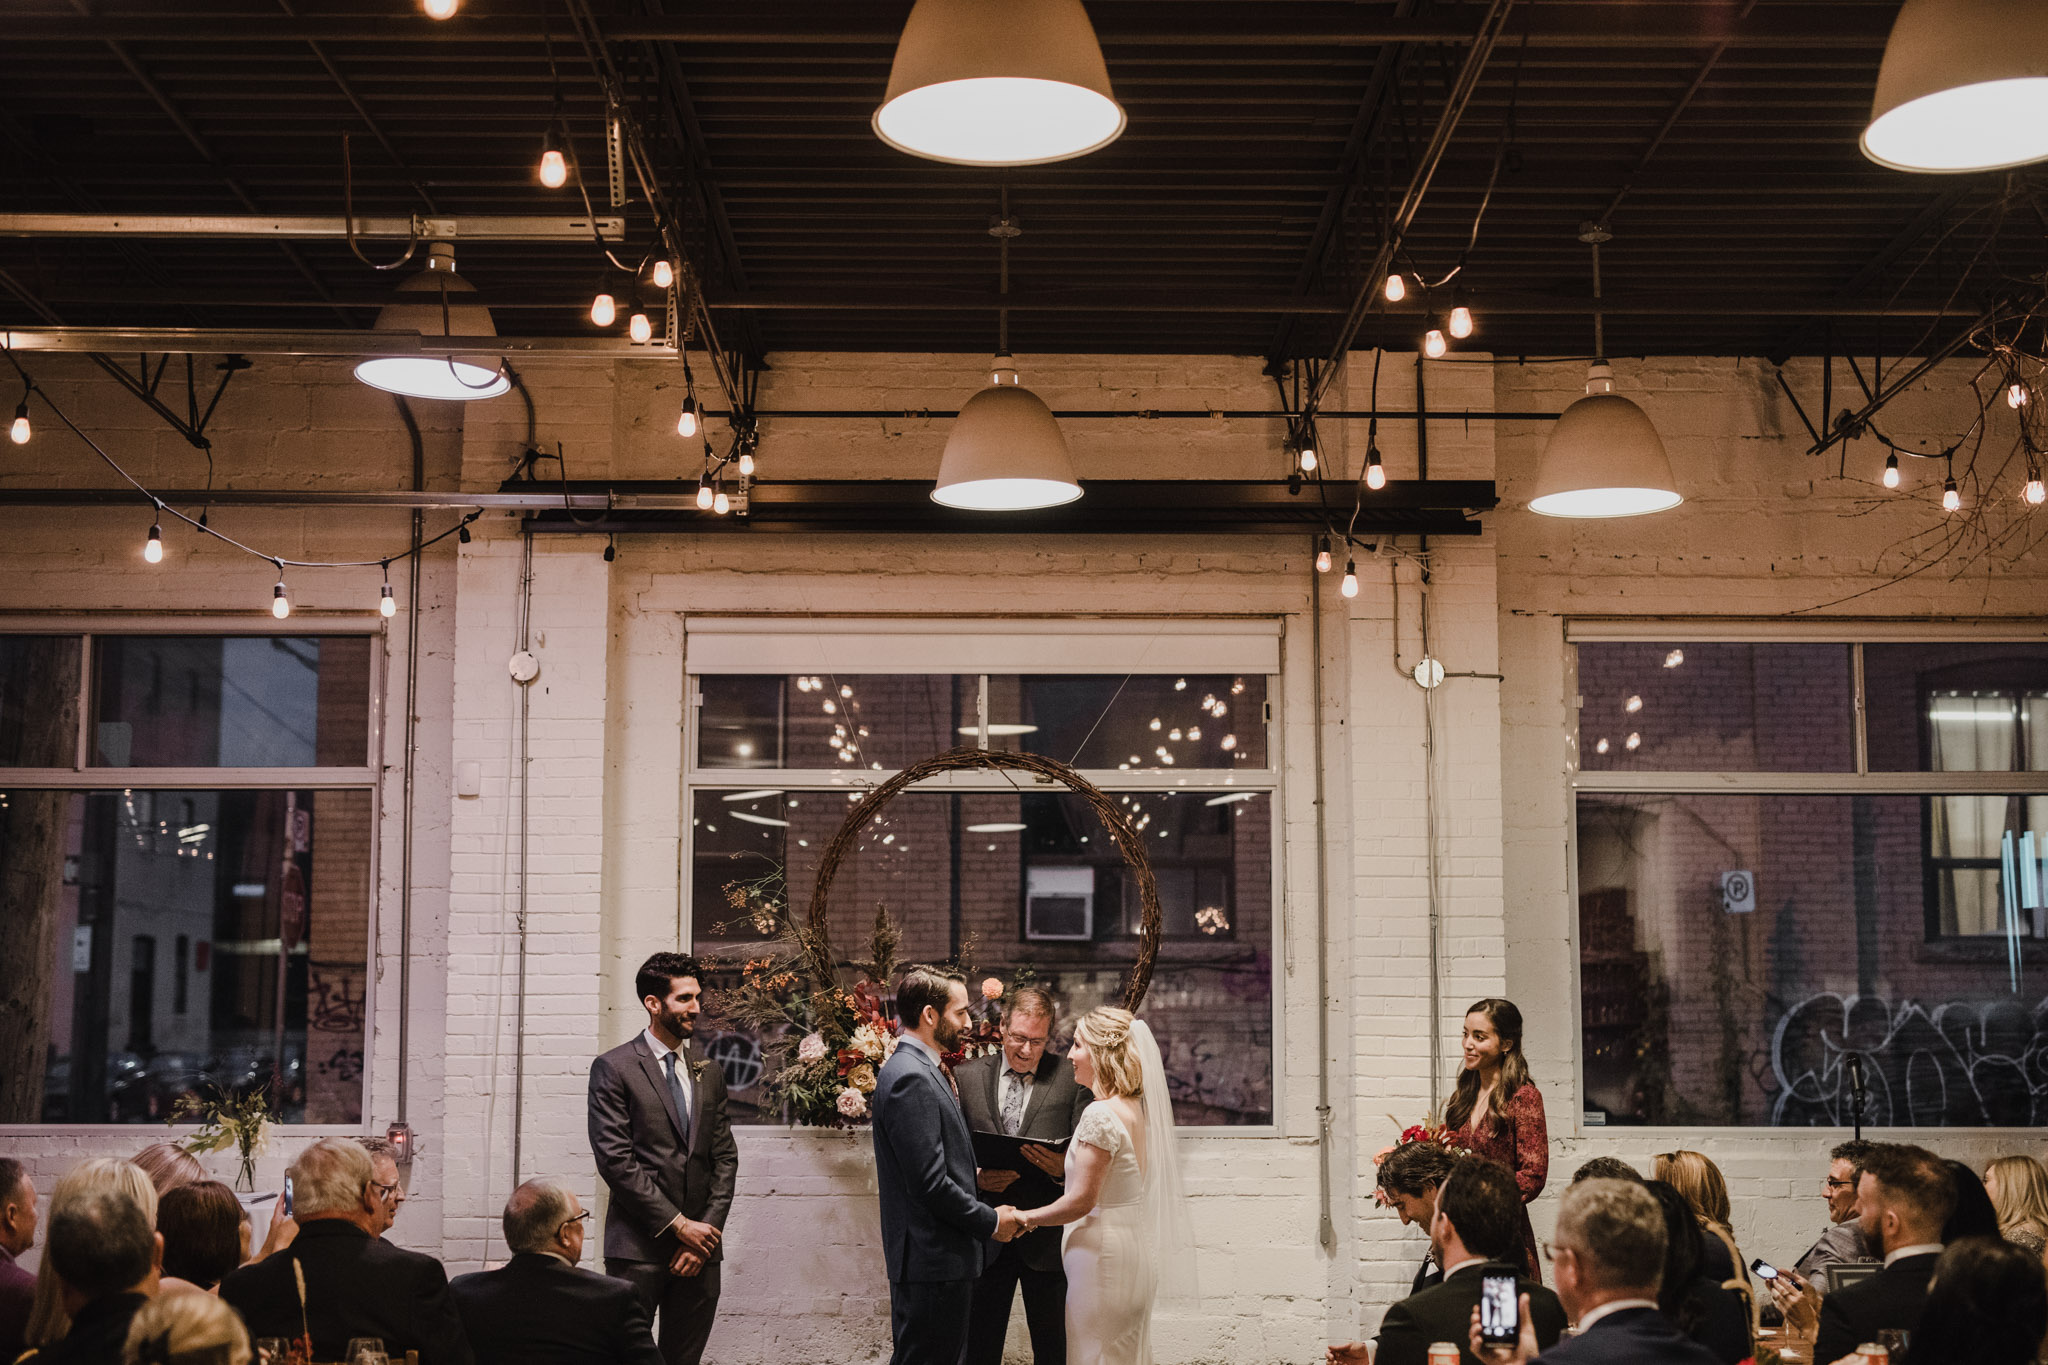 Toronto Coffee Shop Wedding - holding hands at the alter